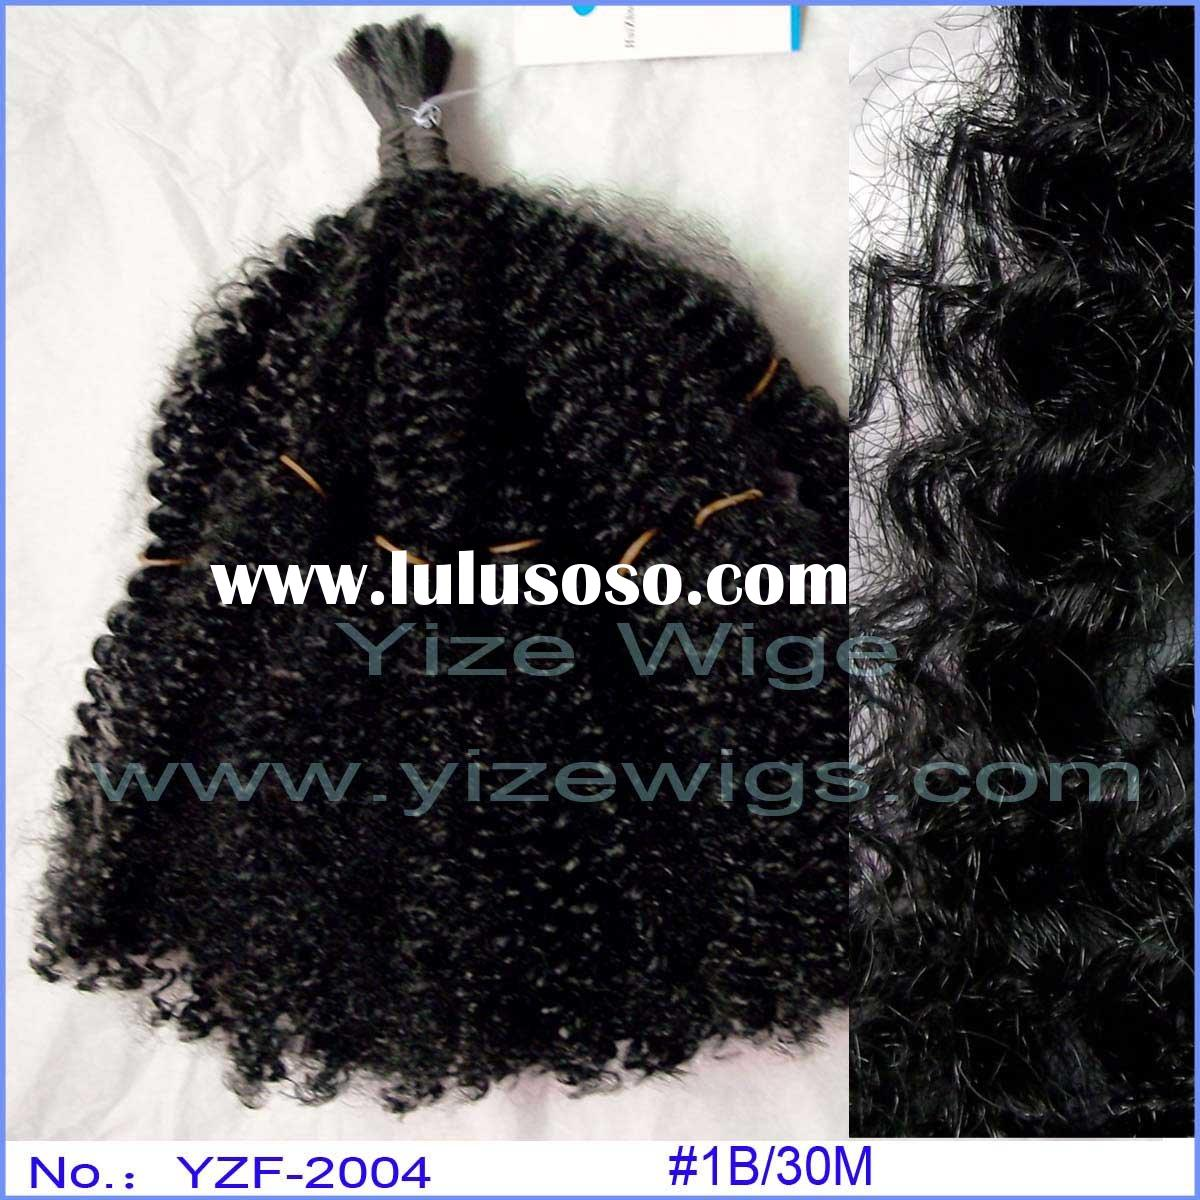 Afro style super curly hair extension hair product F38